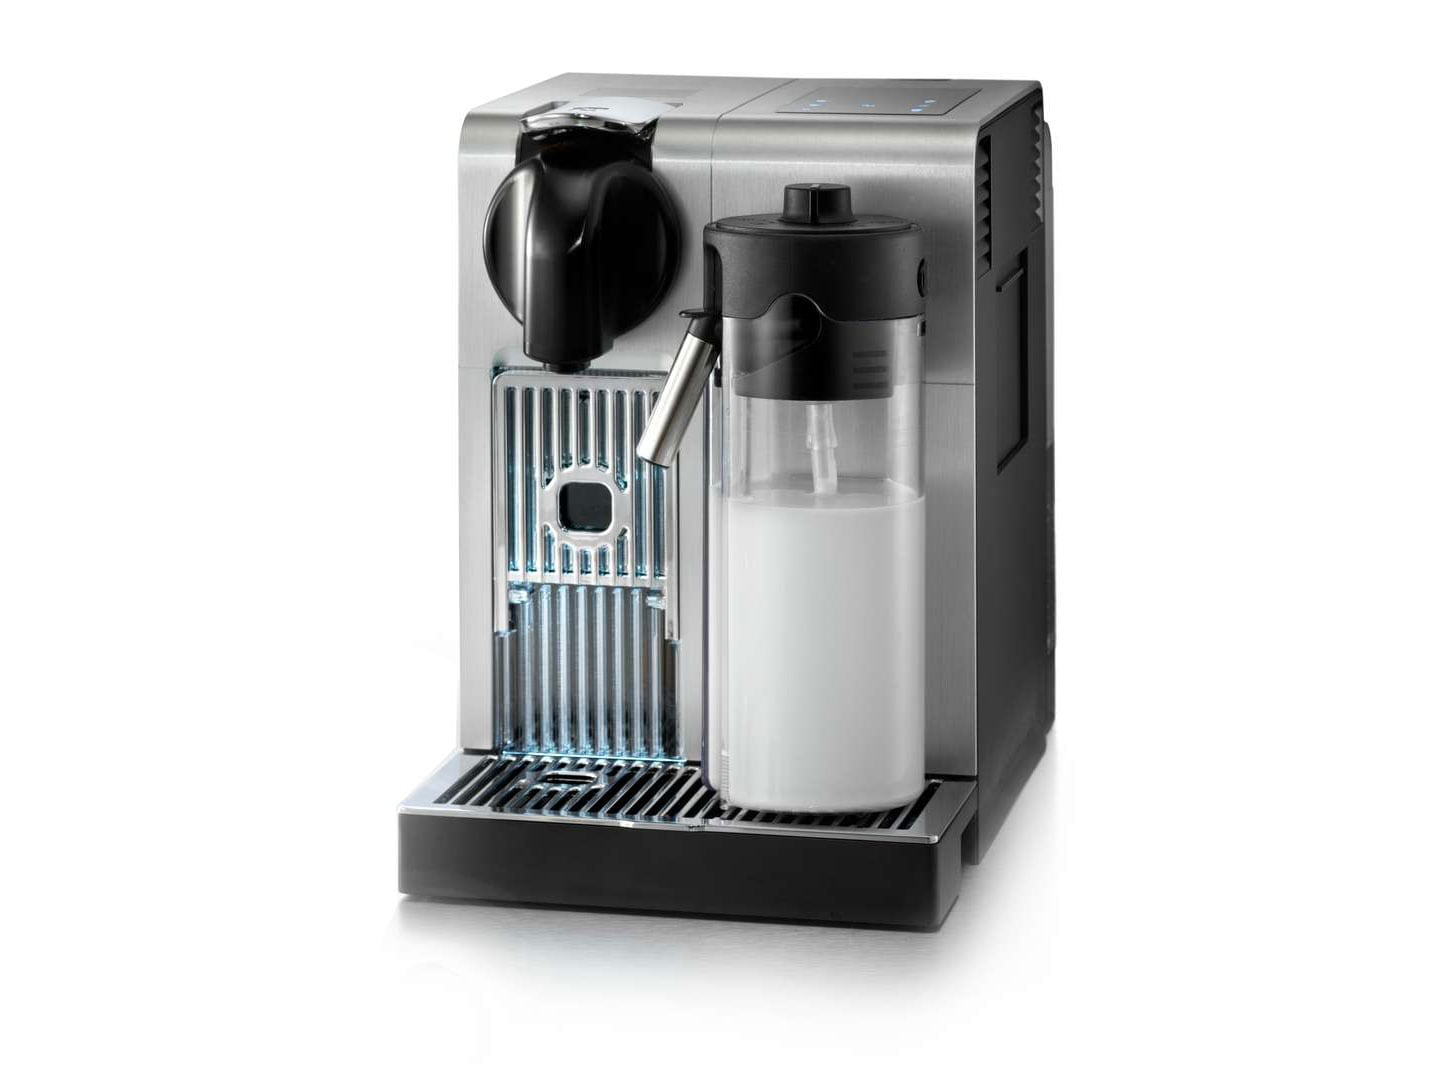 Nespresso lattissima pro manual